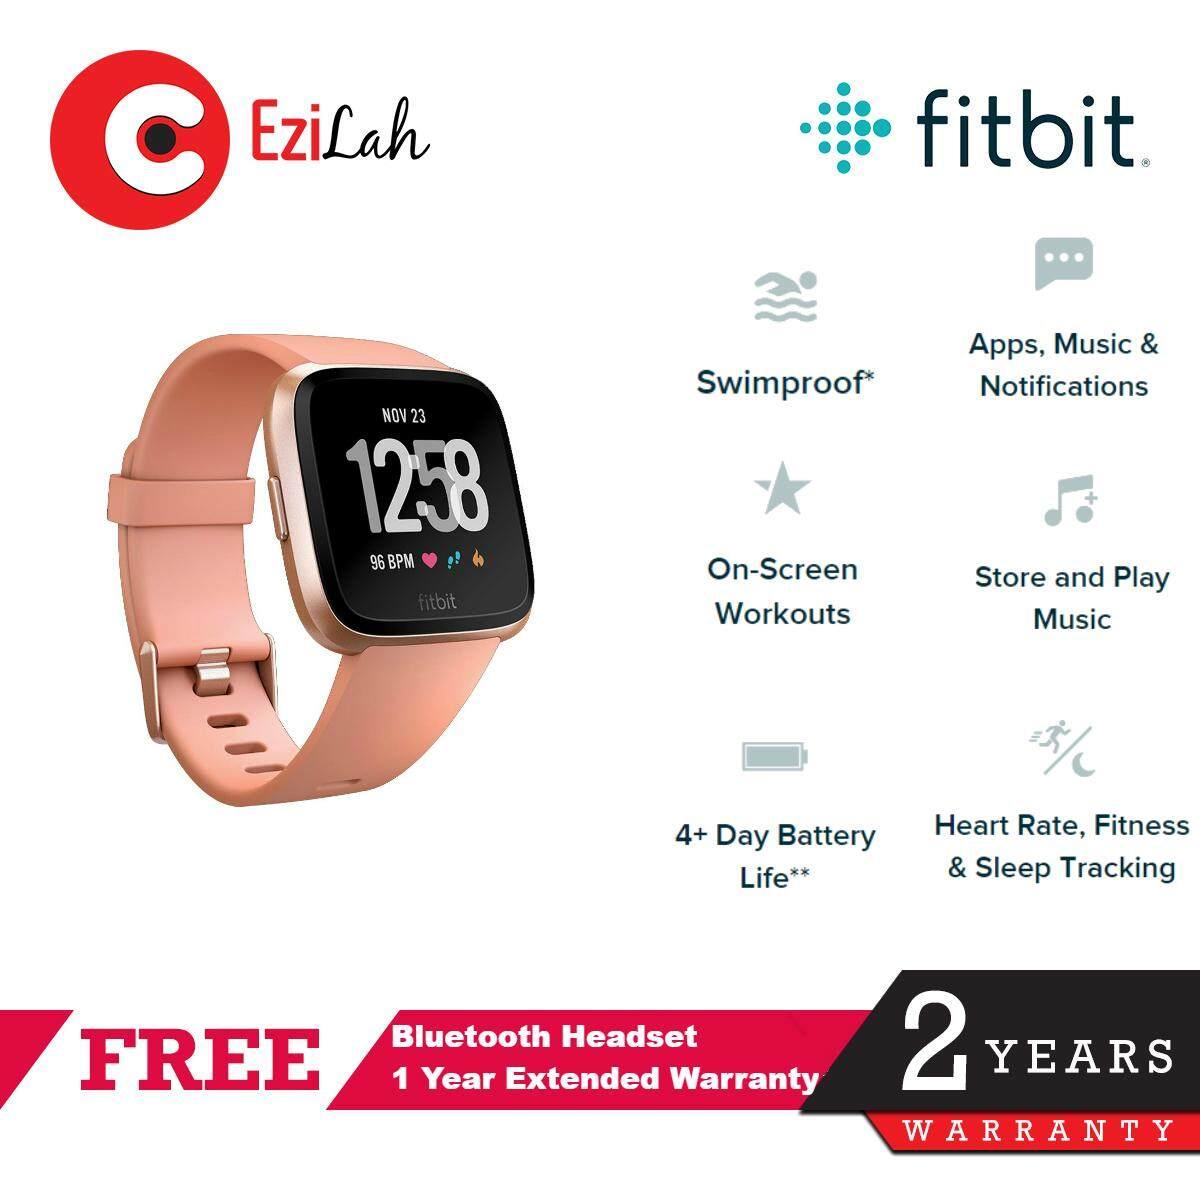 Fitbit Versa Watch Heart Rate + Activity Tracker - 2 sizes in box -  Black/Peach/Grey/Lavender/Charcoal Smart Watch